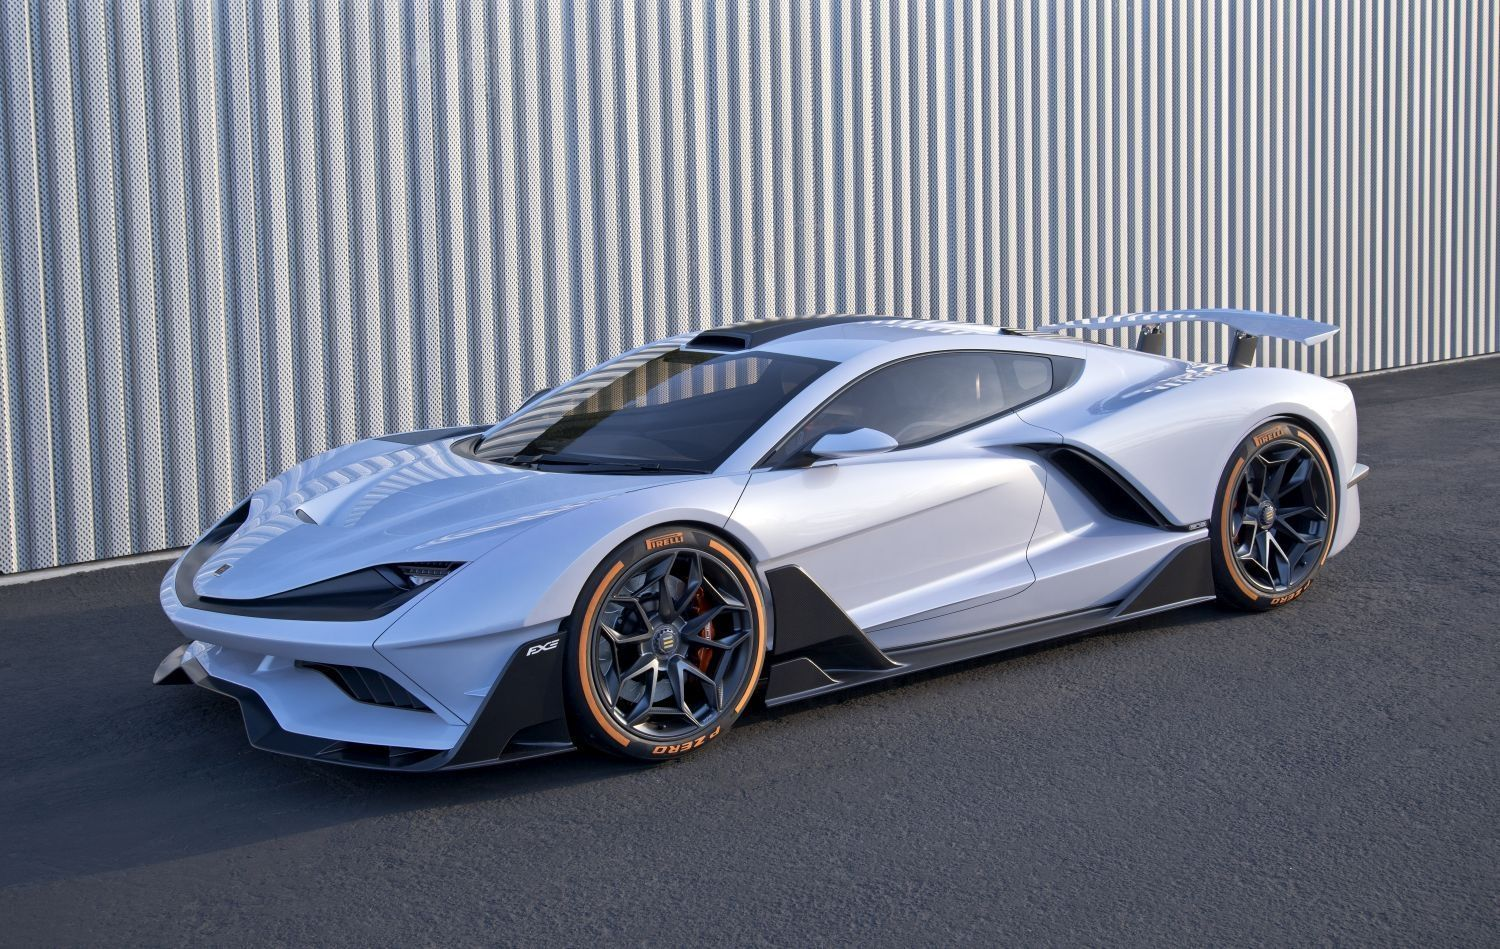 The Aria Fxe Is An American Made 1150 Hp Hybrid Supercar Super Cars Sports Car New Sports Cars